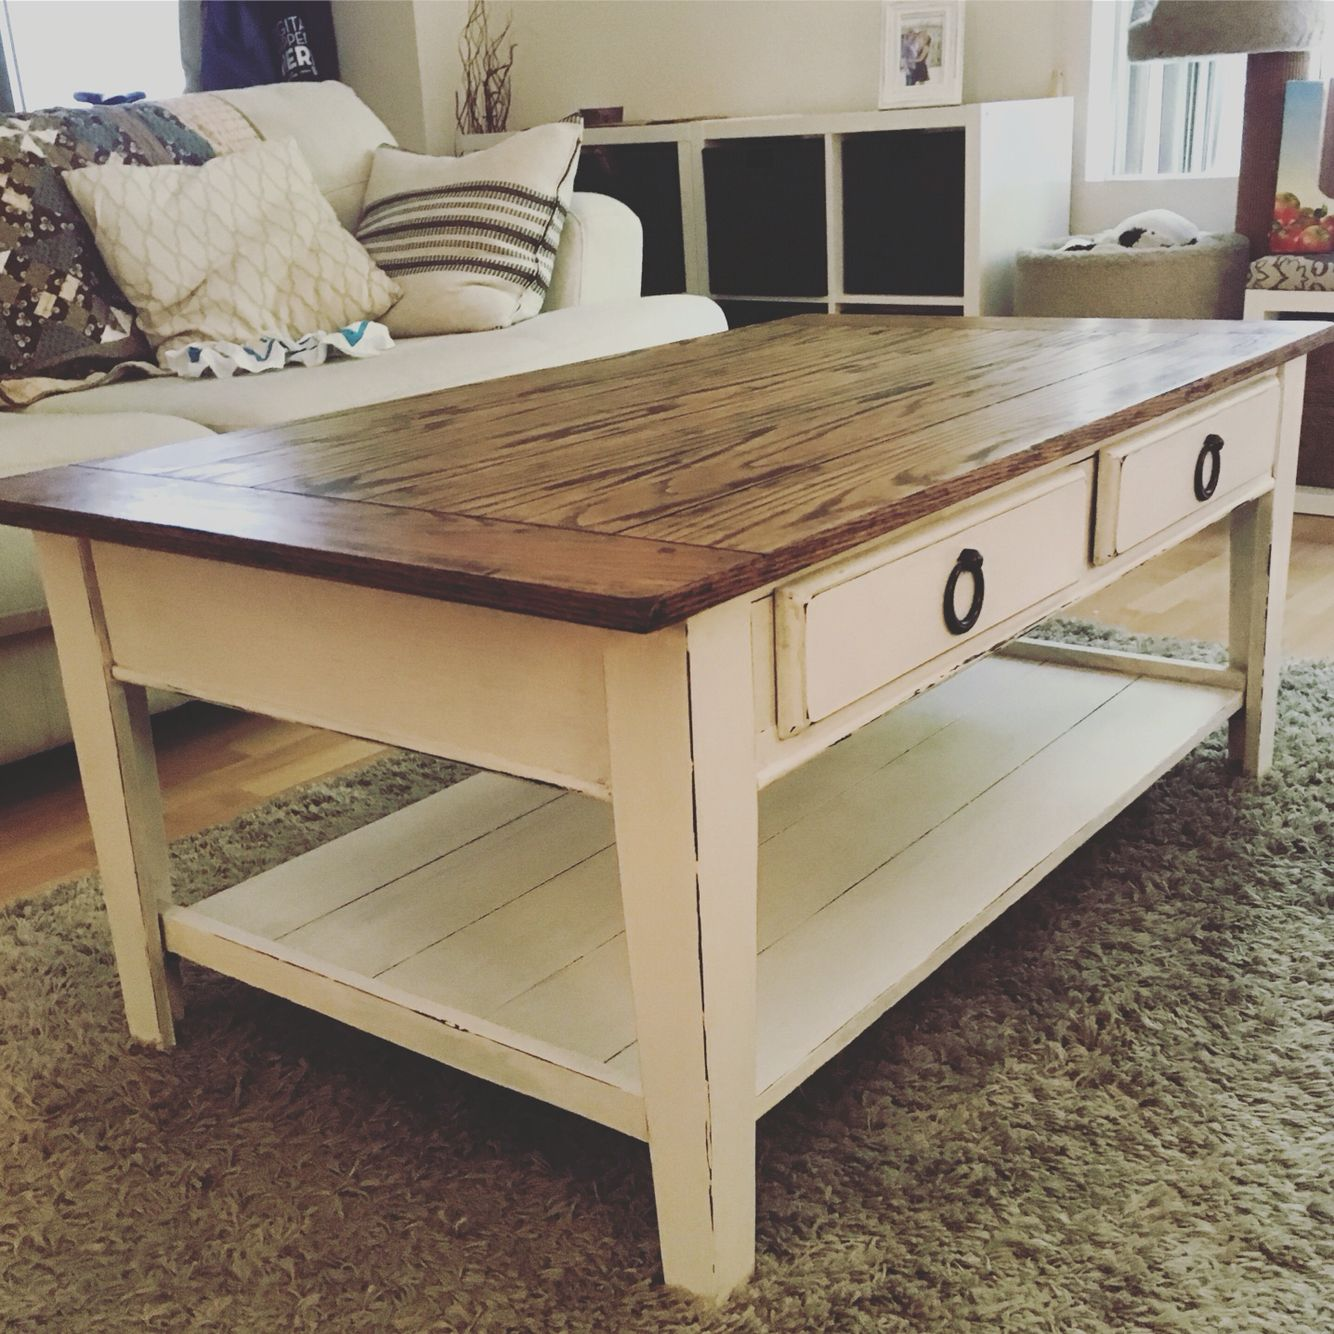 Upcycle Your Dark Wood Coffee Table Into A Light Airy Antique Dark Wood Coffee Table Coffee Table Wood Coffee Table [ 1334 x 1334 Pixel ]